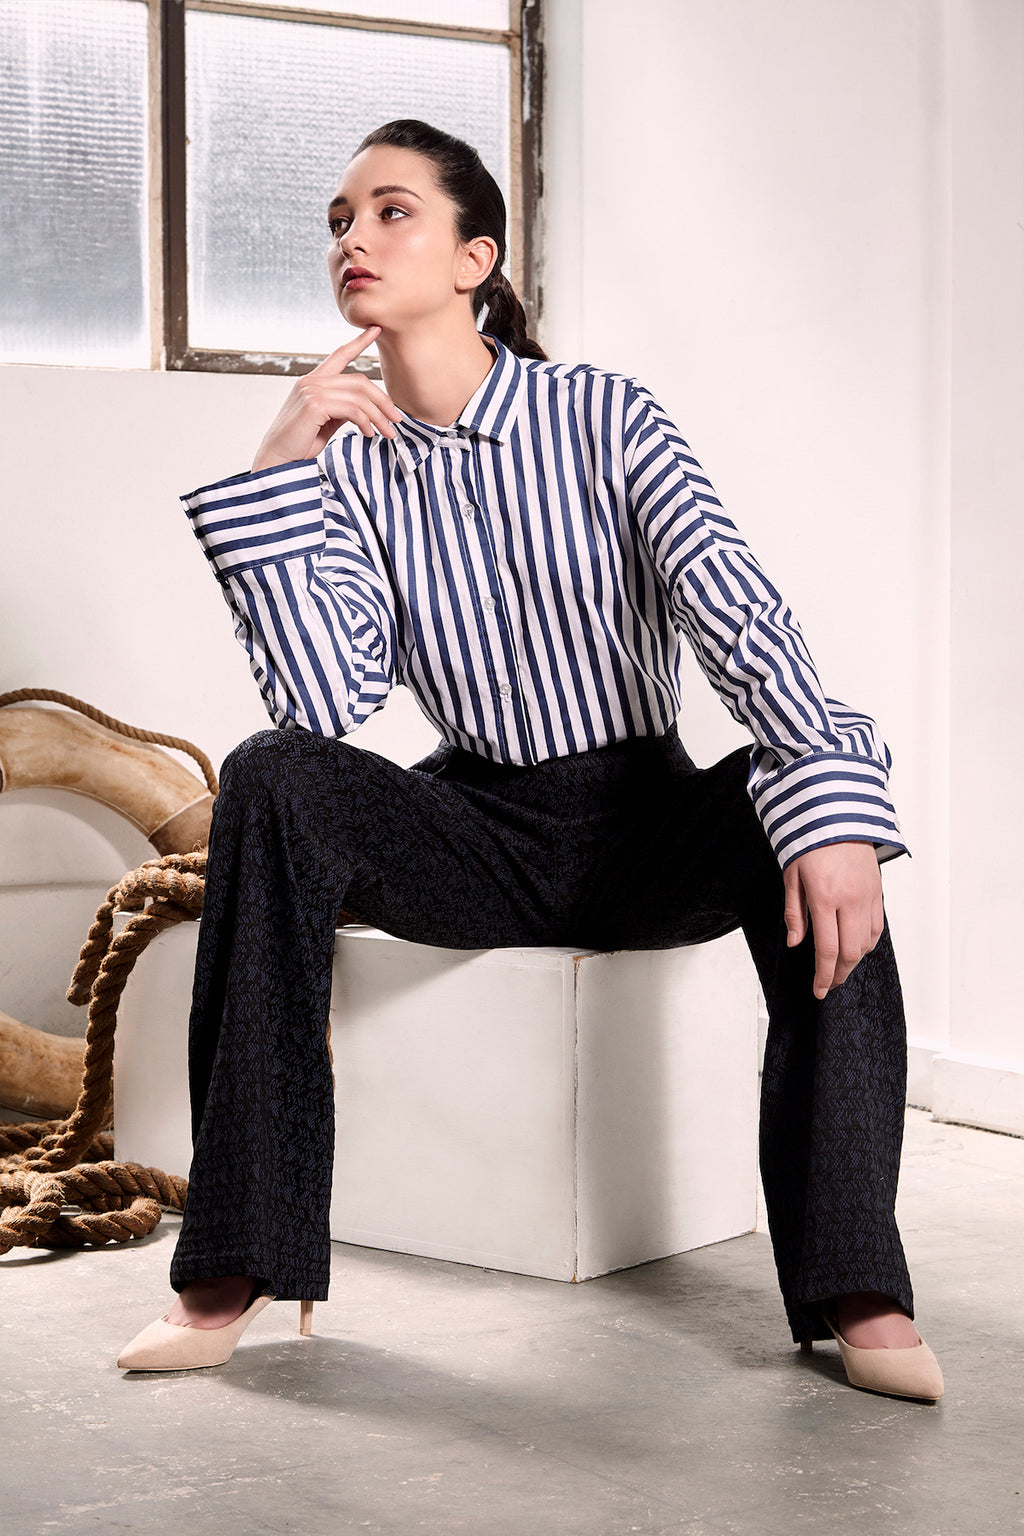 Striped Kyoto Shirt Shirts The Fashion Advocate Ethical Australian fashion designer boutique Melbourne sustainable blogger